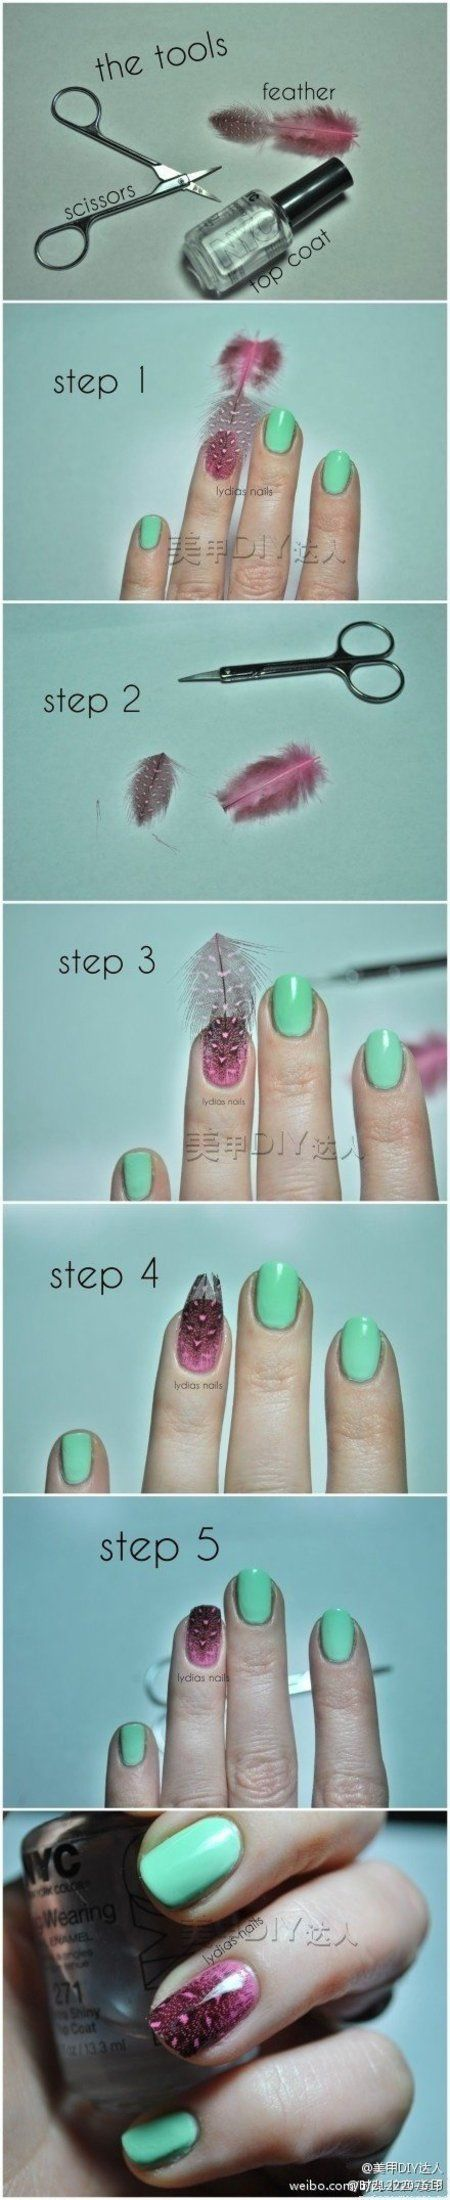 Feather Nails | See more at http://www.nailsss.com/... | See more nail designs at http://www.nailsss.com/...